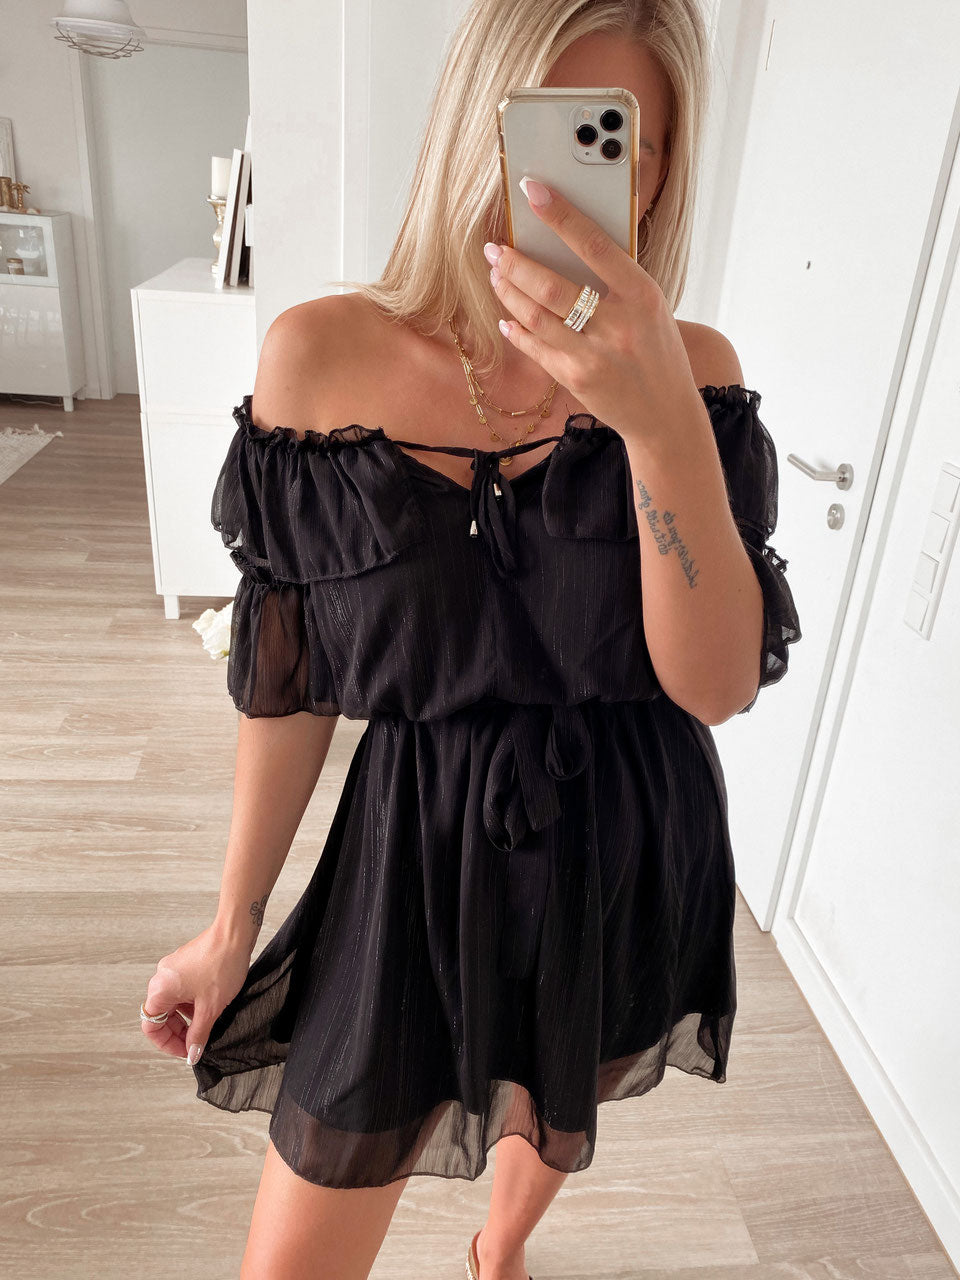 dress 'offshoulder girl'